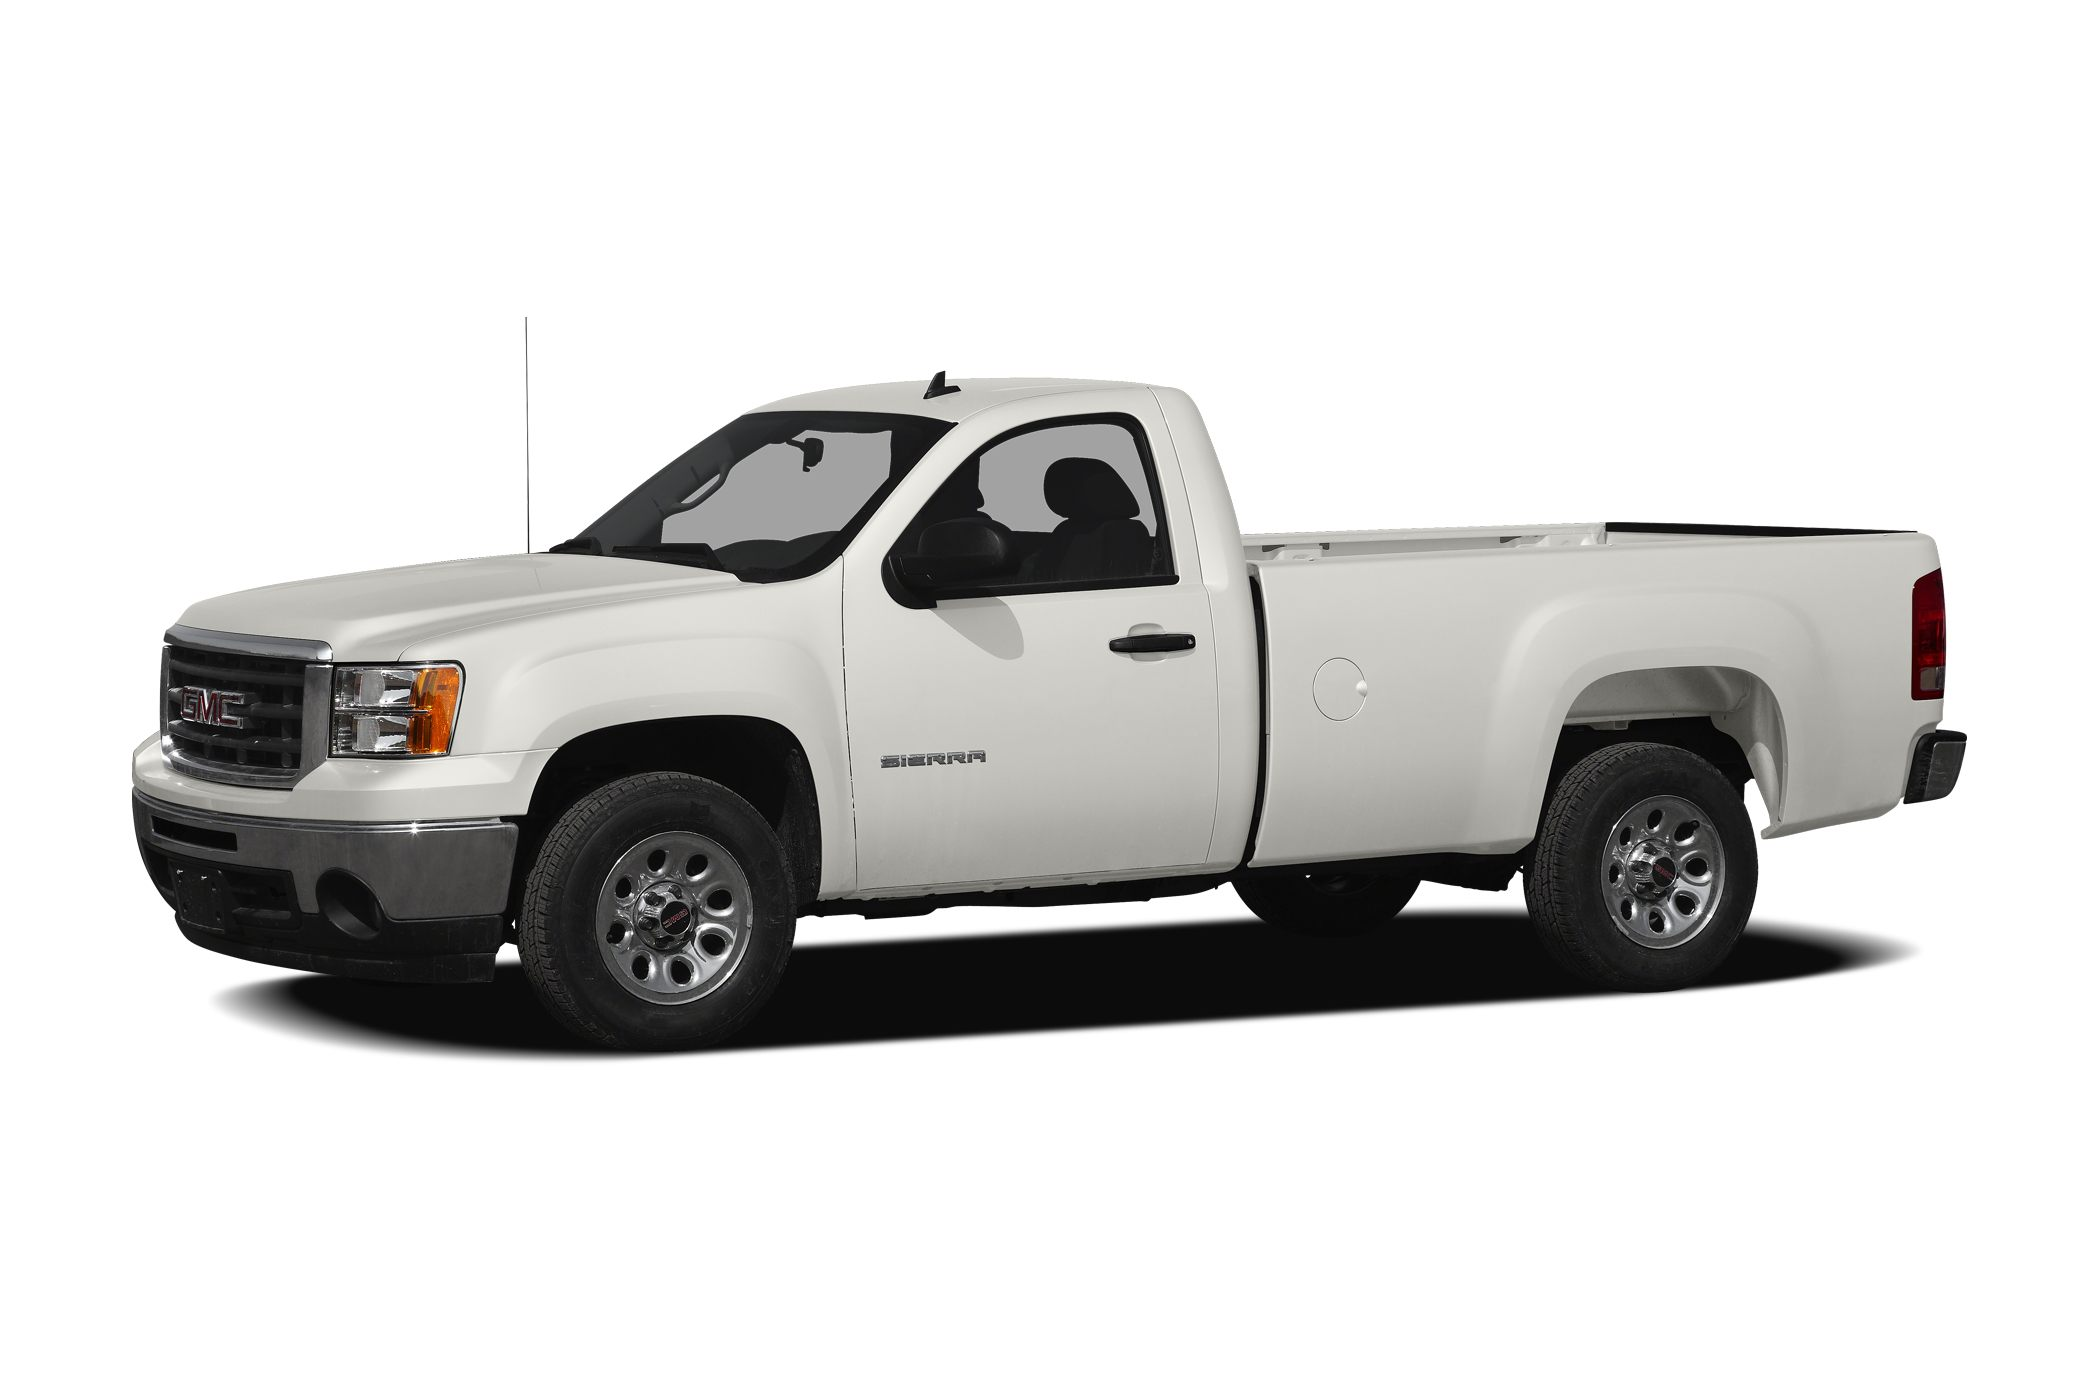 2012 GMC Sierra 1500 SLE Extended Cab Pickup for sale in Tiffin for $27,000 with 25,602 miles.